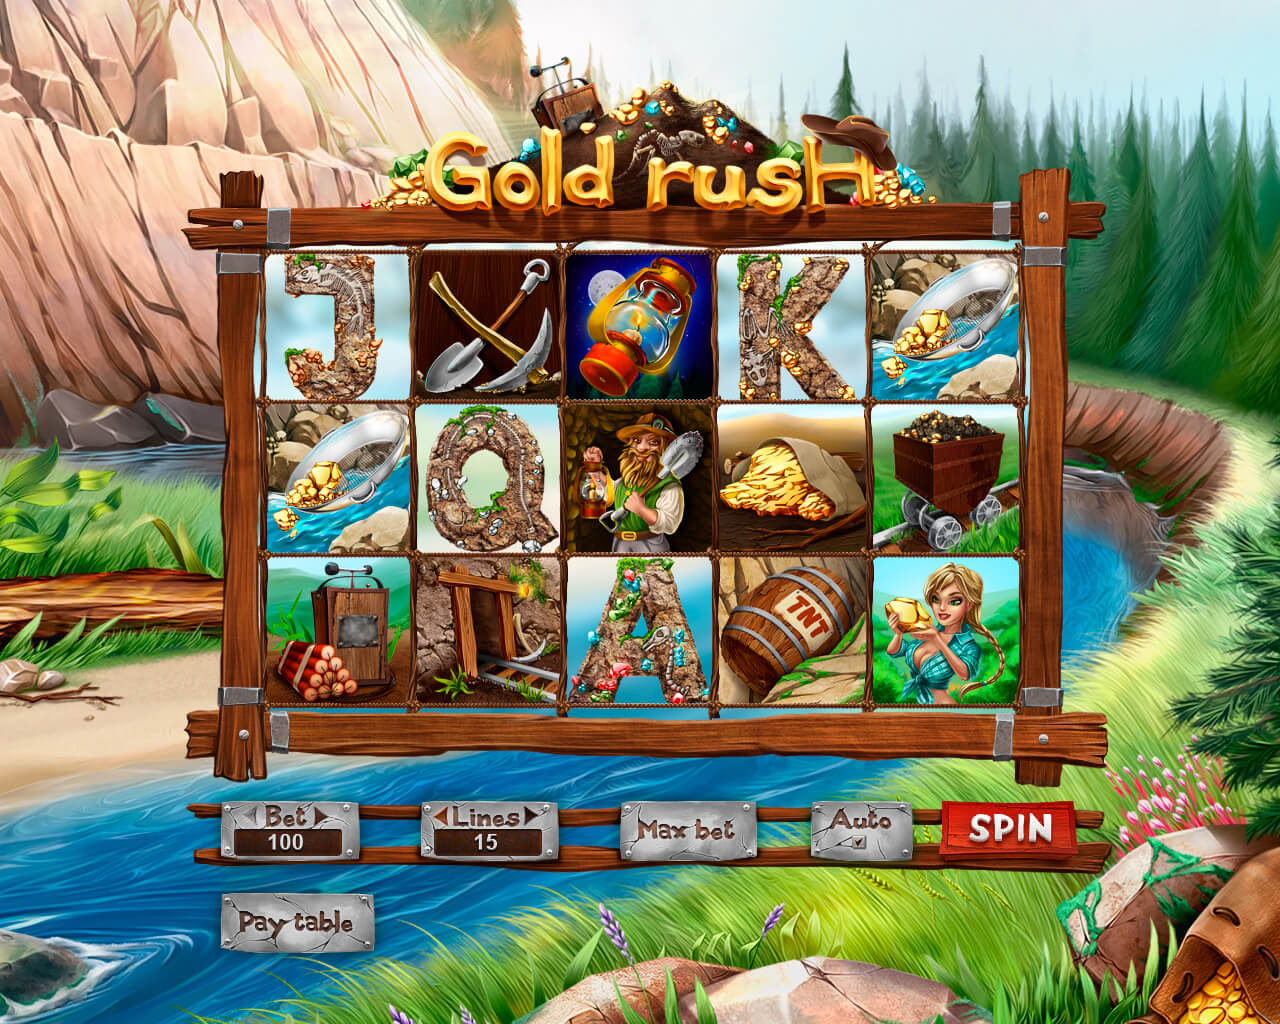 Slot machine about Goldrush